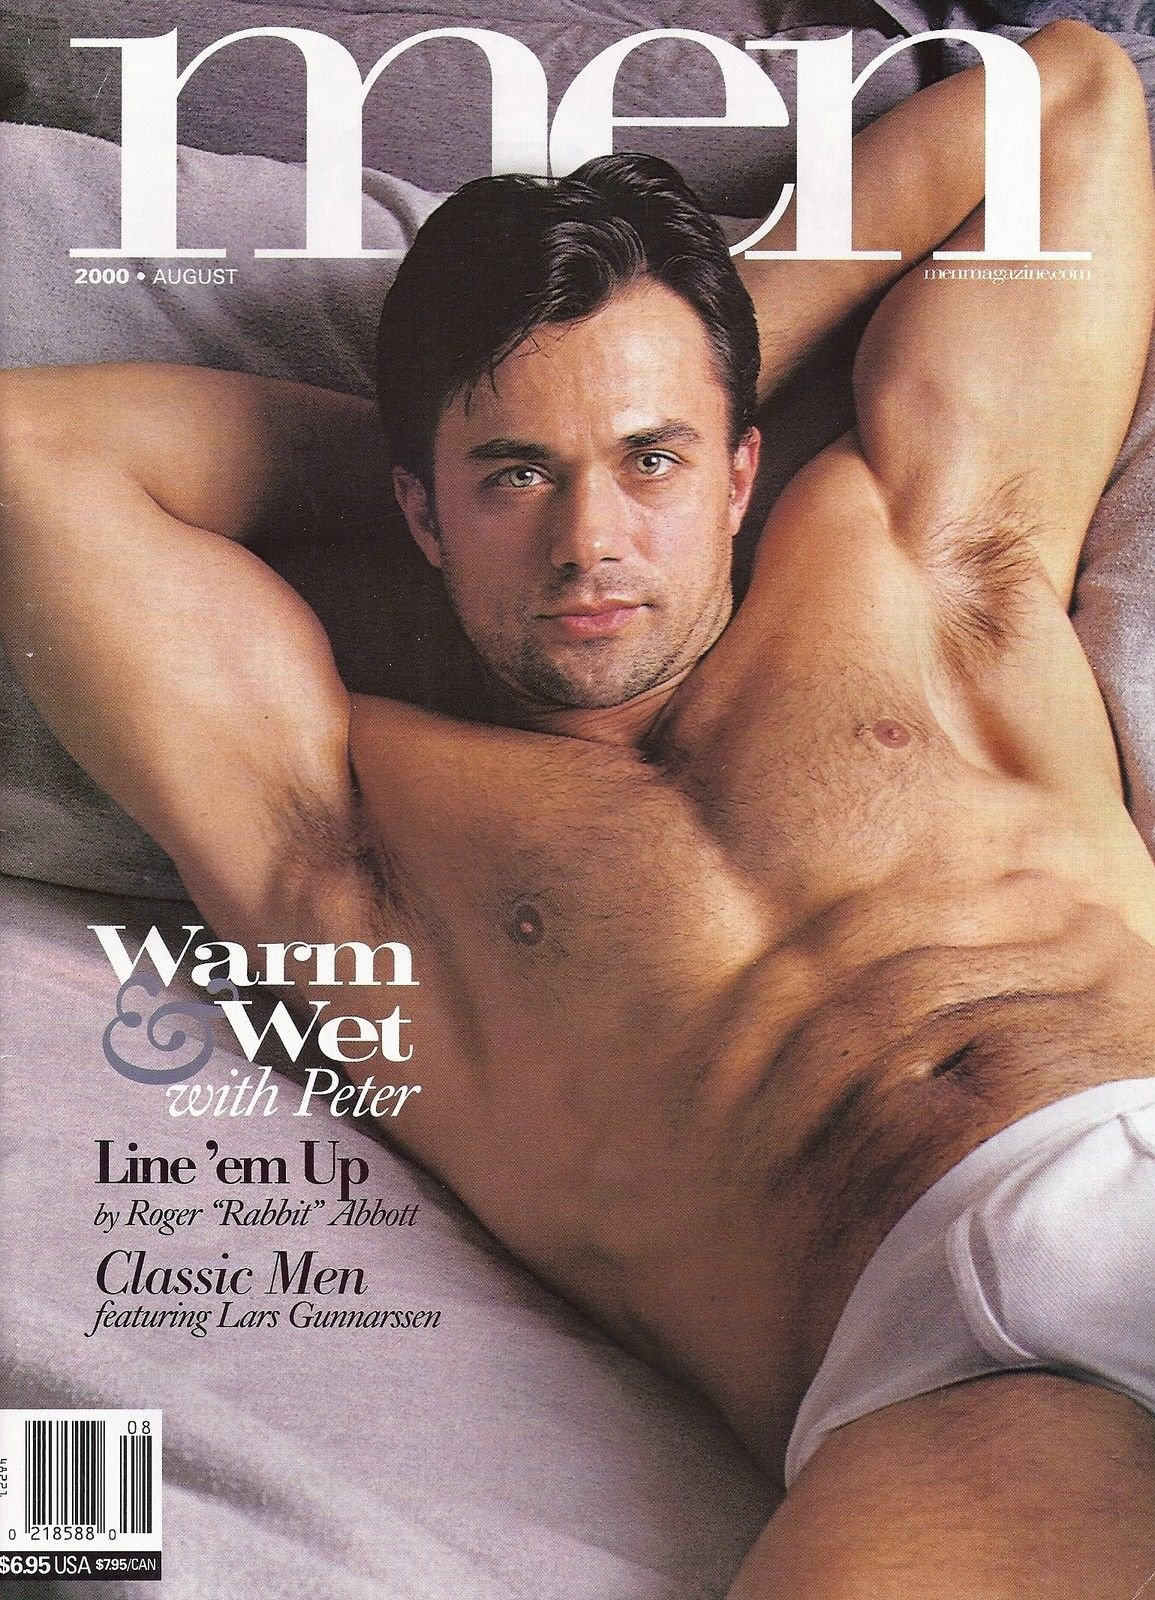 Lot of 8 Men Magazines from 2000-2003 [Studs, Hairy Daddies, Nude  Bodybuilders]: Alan Carter: Amazon.com: Books